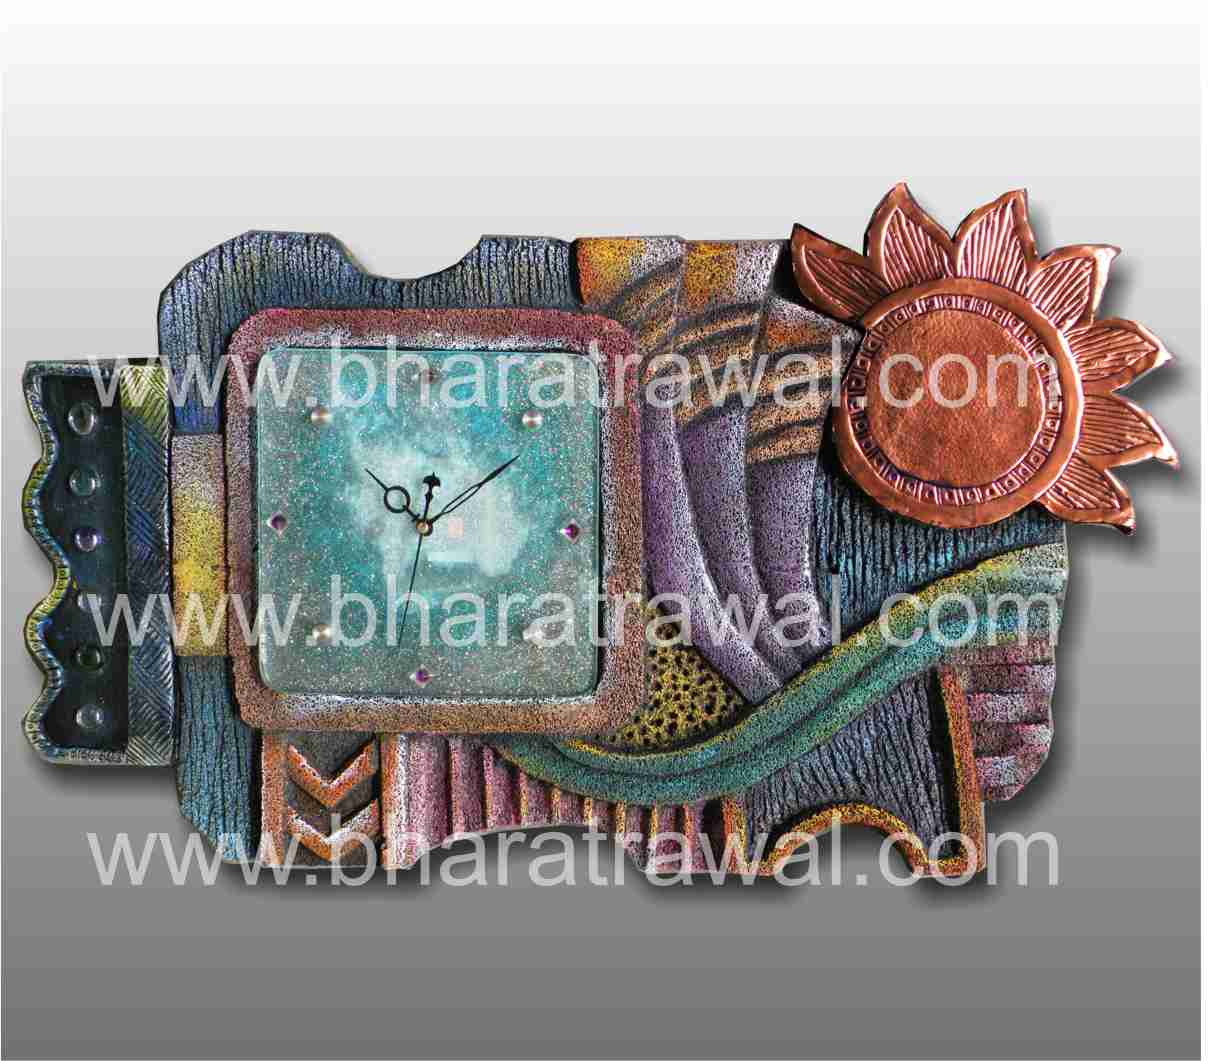 Mural art by muralguru bharat rawal april 2012 for Ceramic mural art